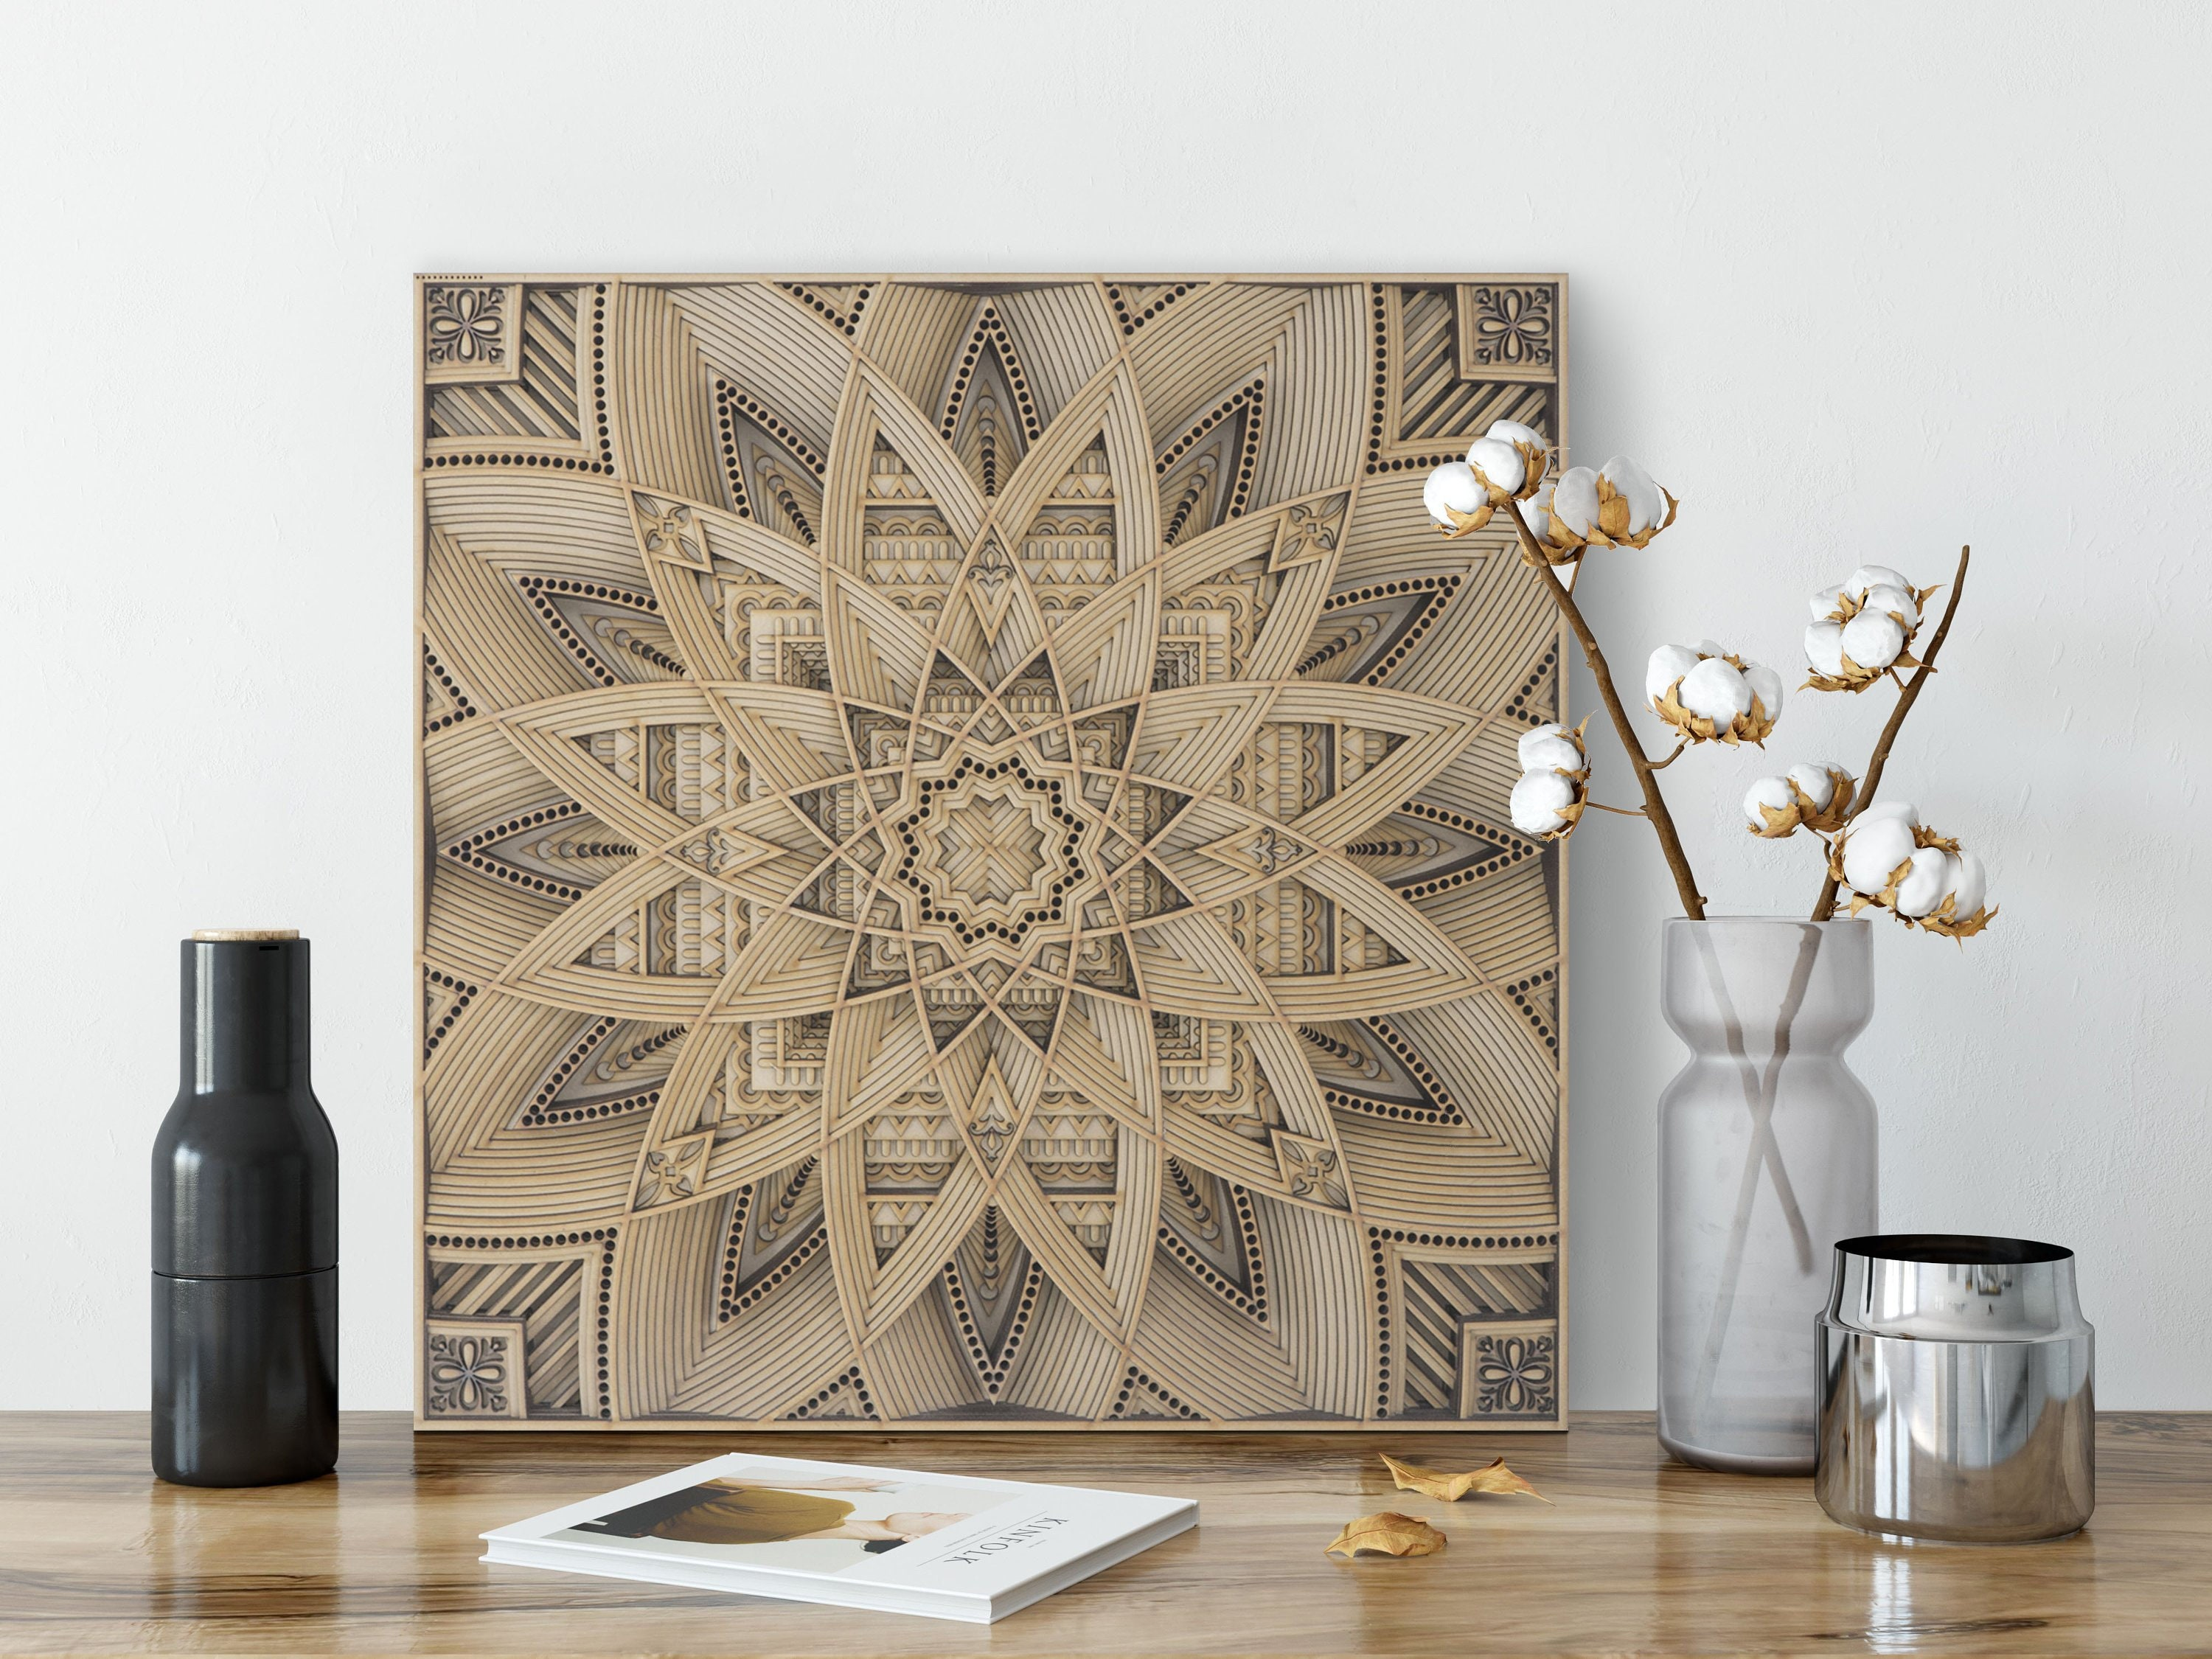 Stereowood Astral Multi Layer Wooden Wall Art Stereoscopic 3d Decor Living Room Decor Bedroom Decor Laser Cut Arts And Crafts